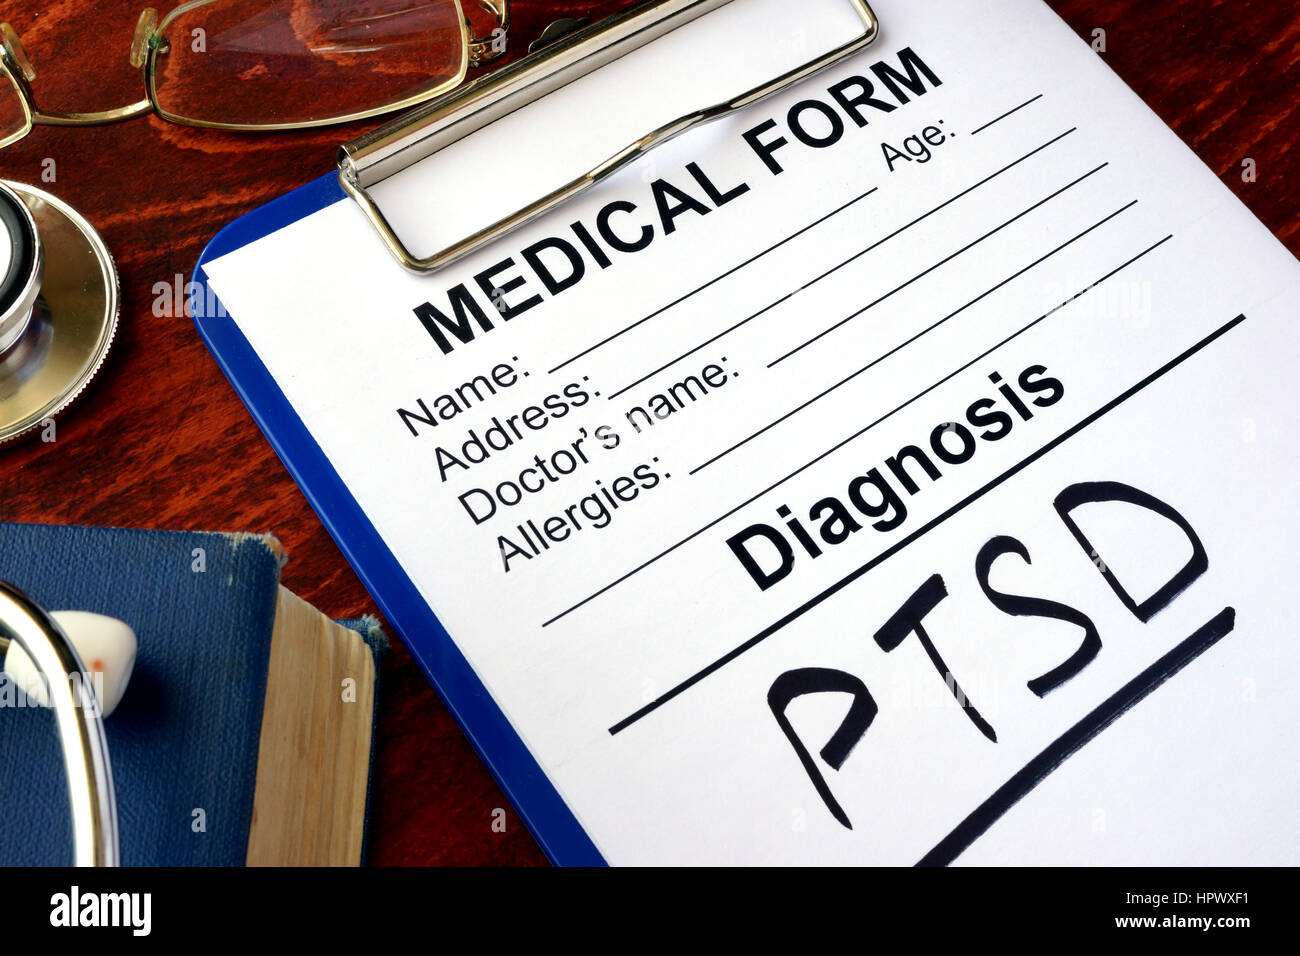 Medical form with diagnosis PTSD on a table. - Stock Image